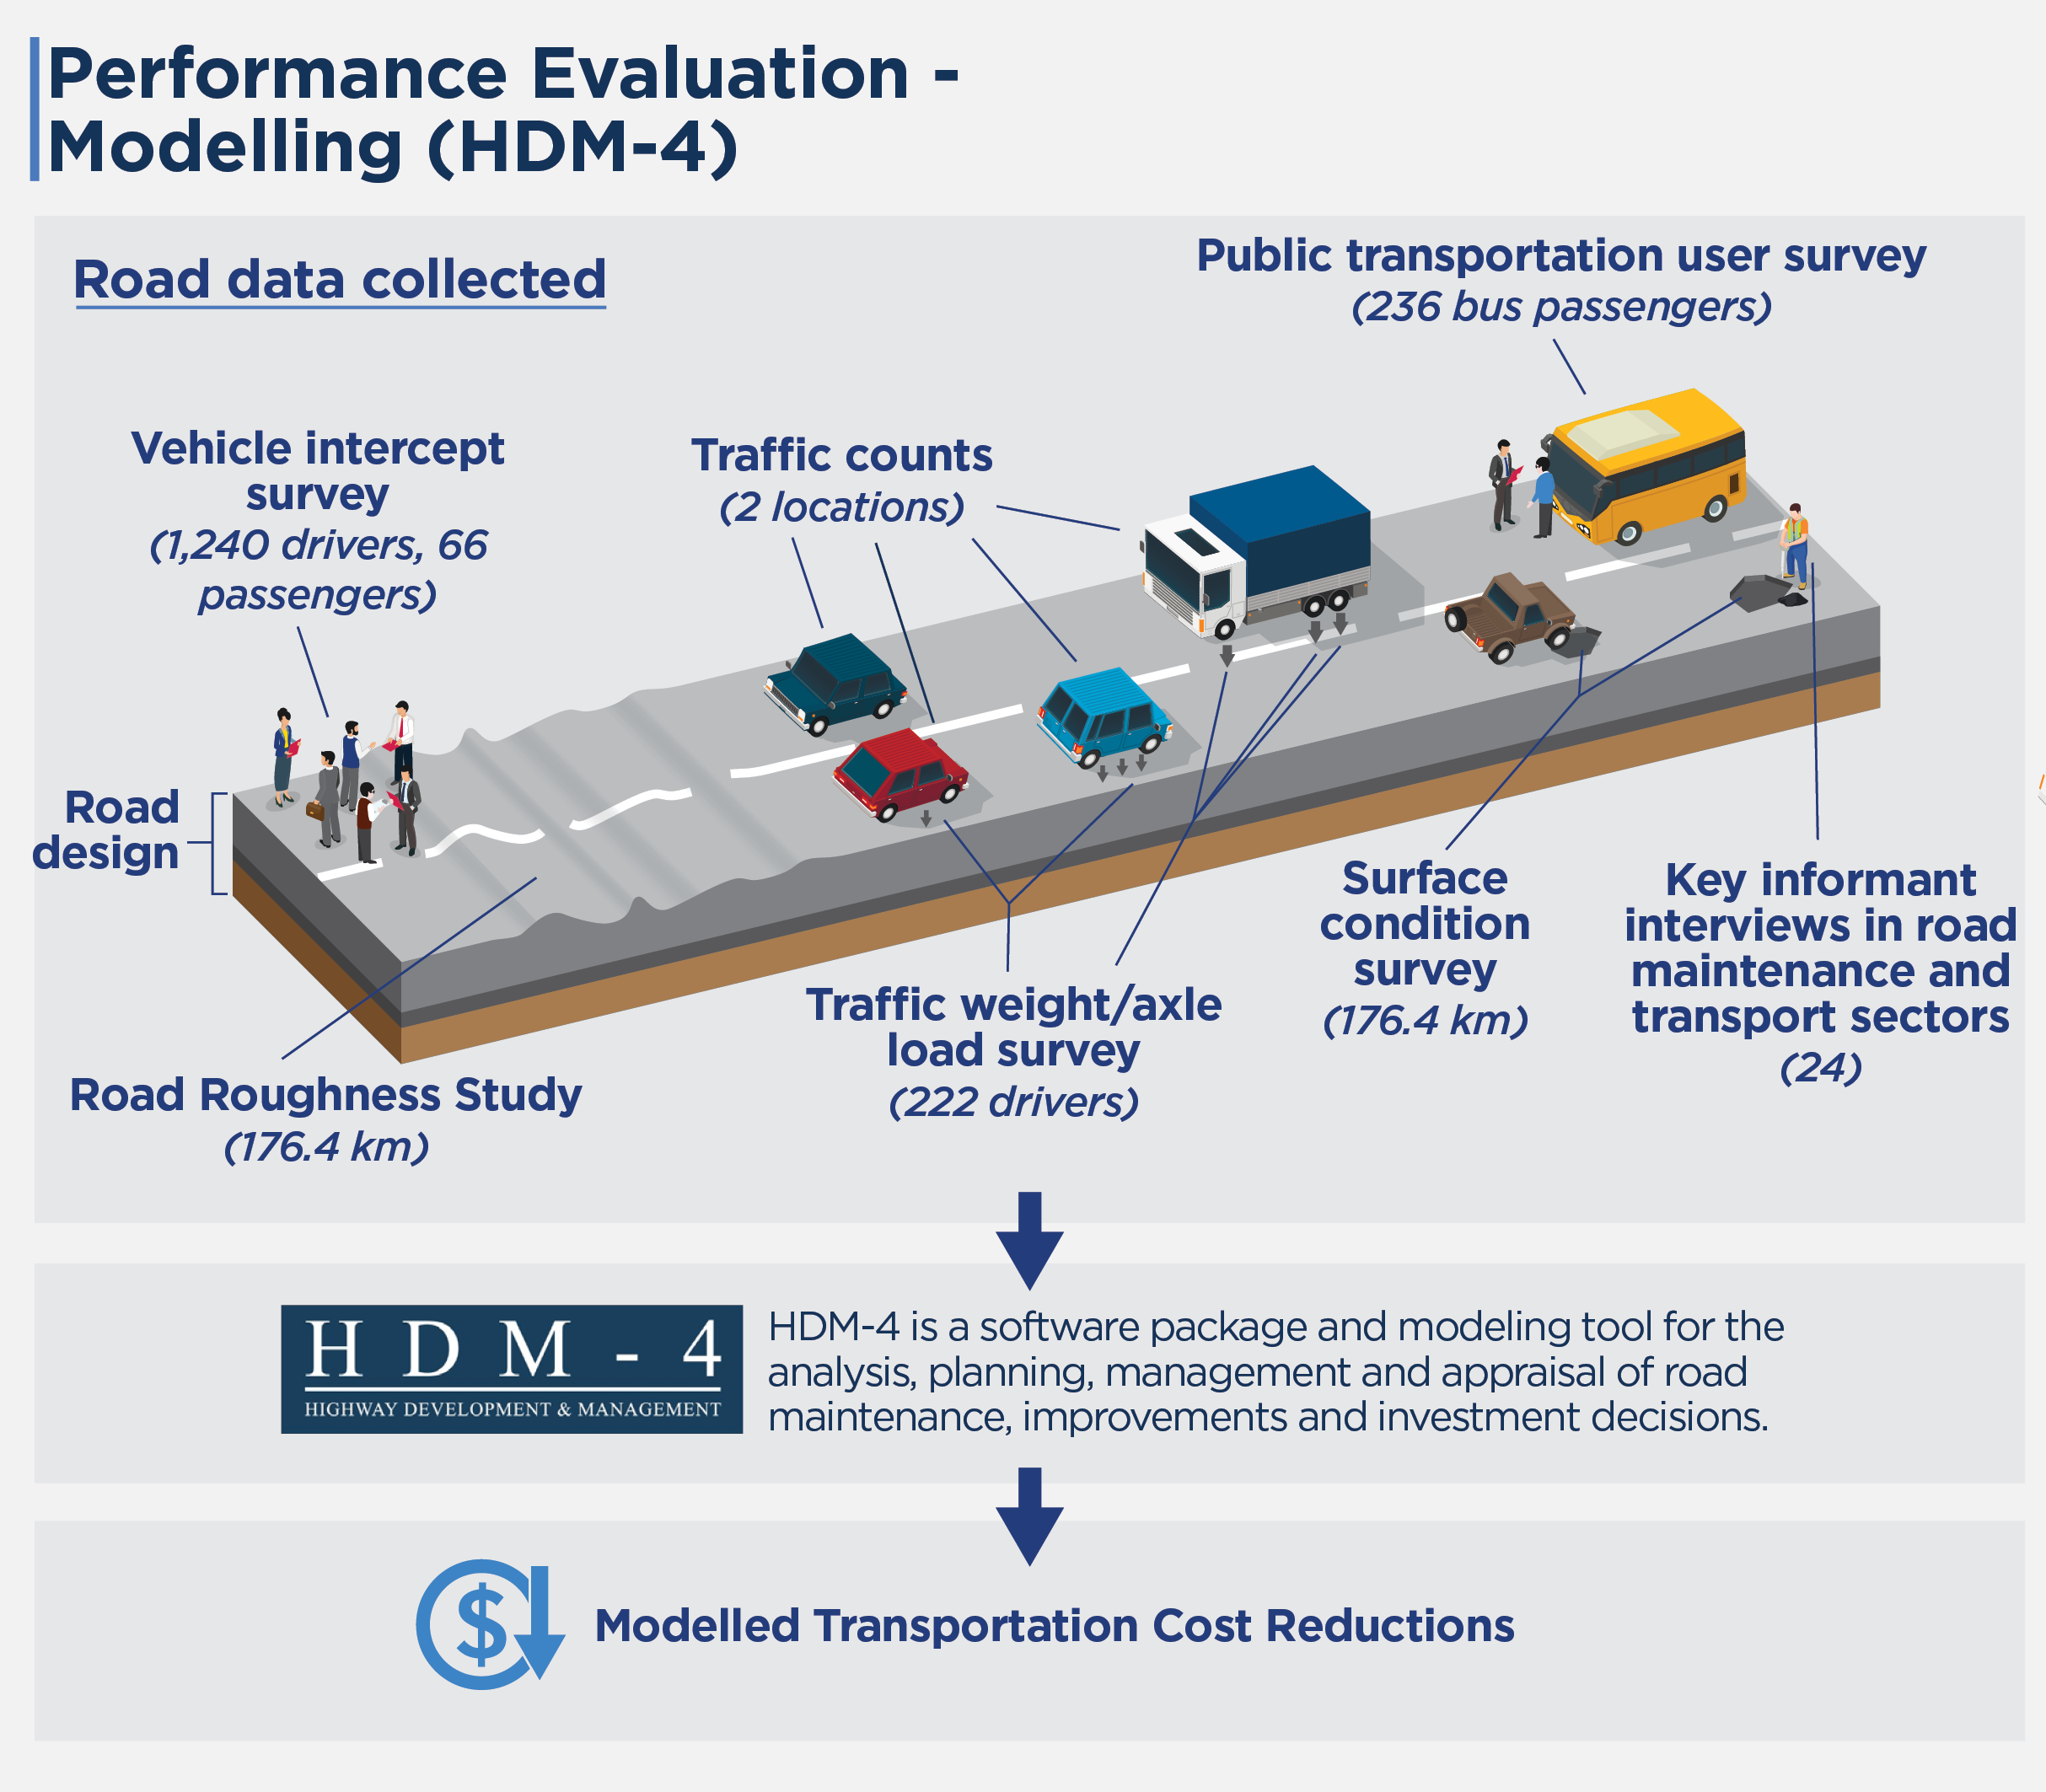 Evaluation methodology and data collection details